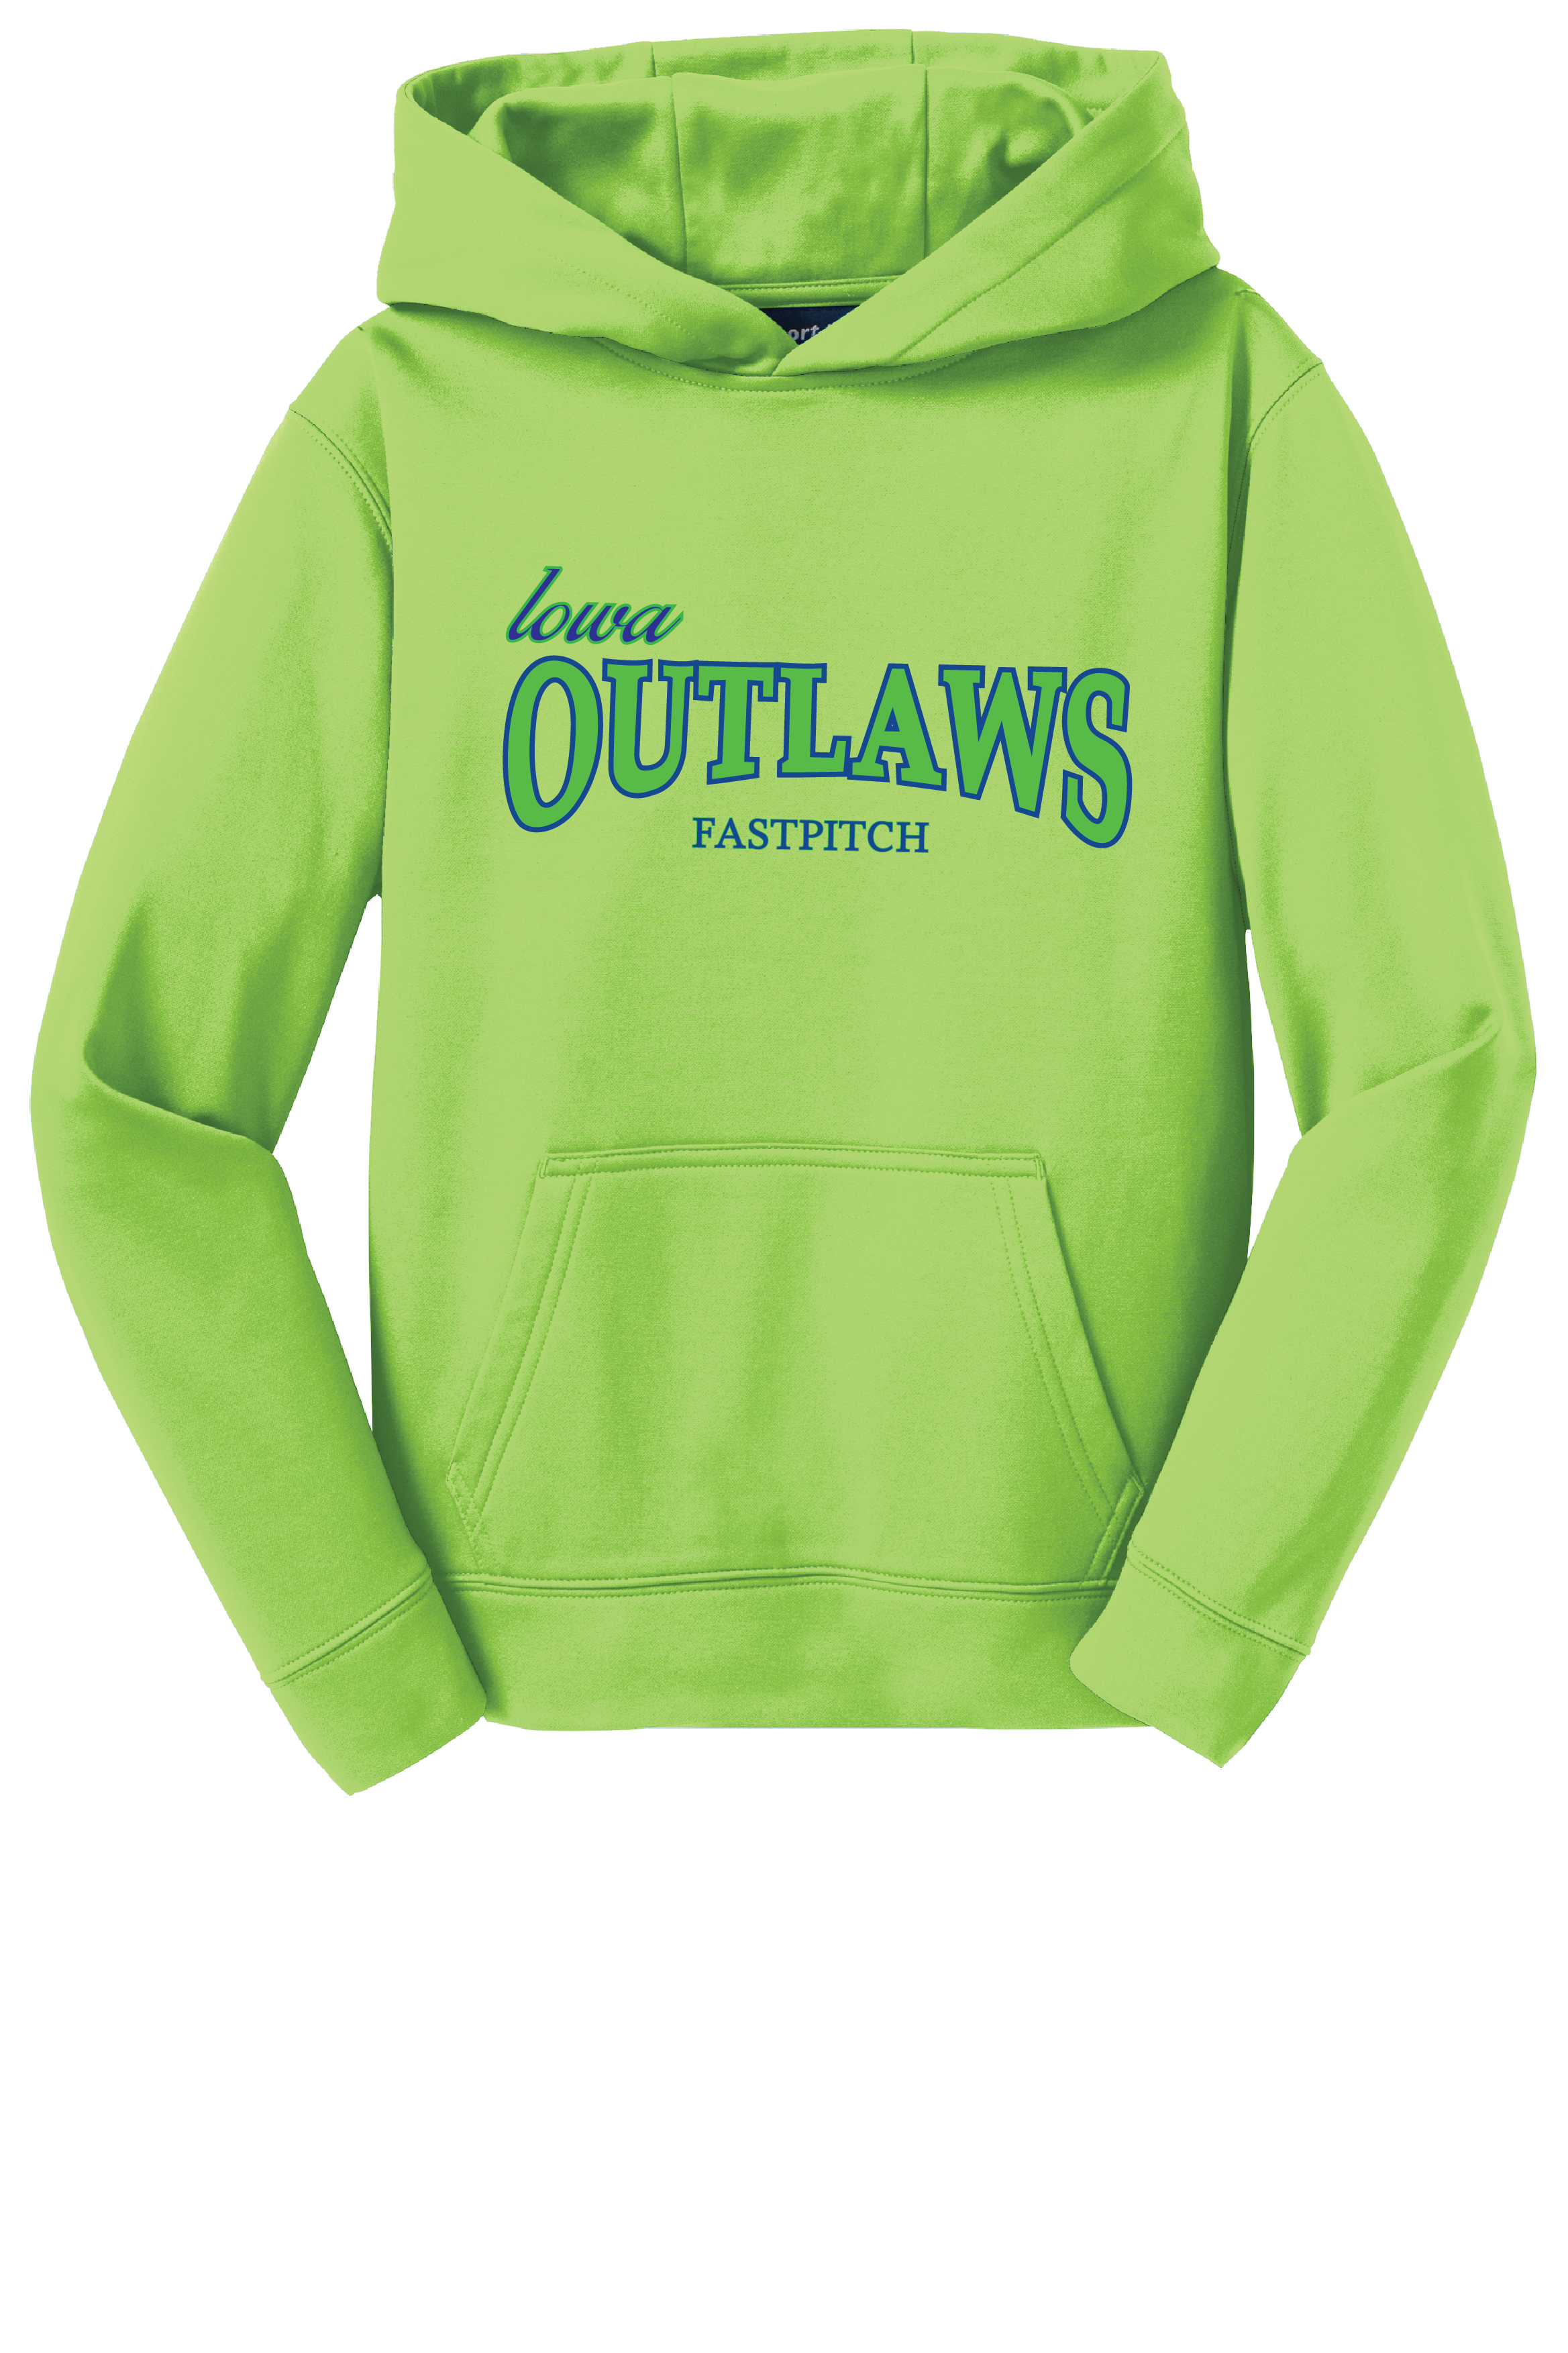 Iowa OUTLAWS Fastpitch YOUTH PERFORMANCE HOODIE -NEON GREEN